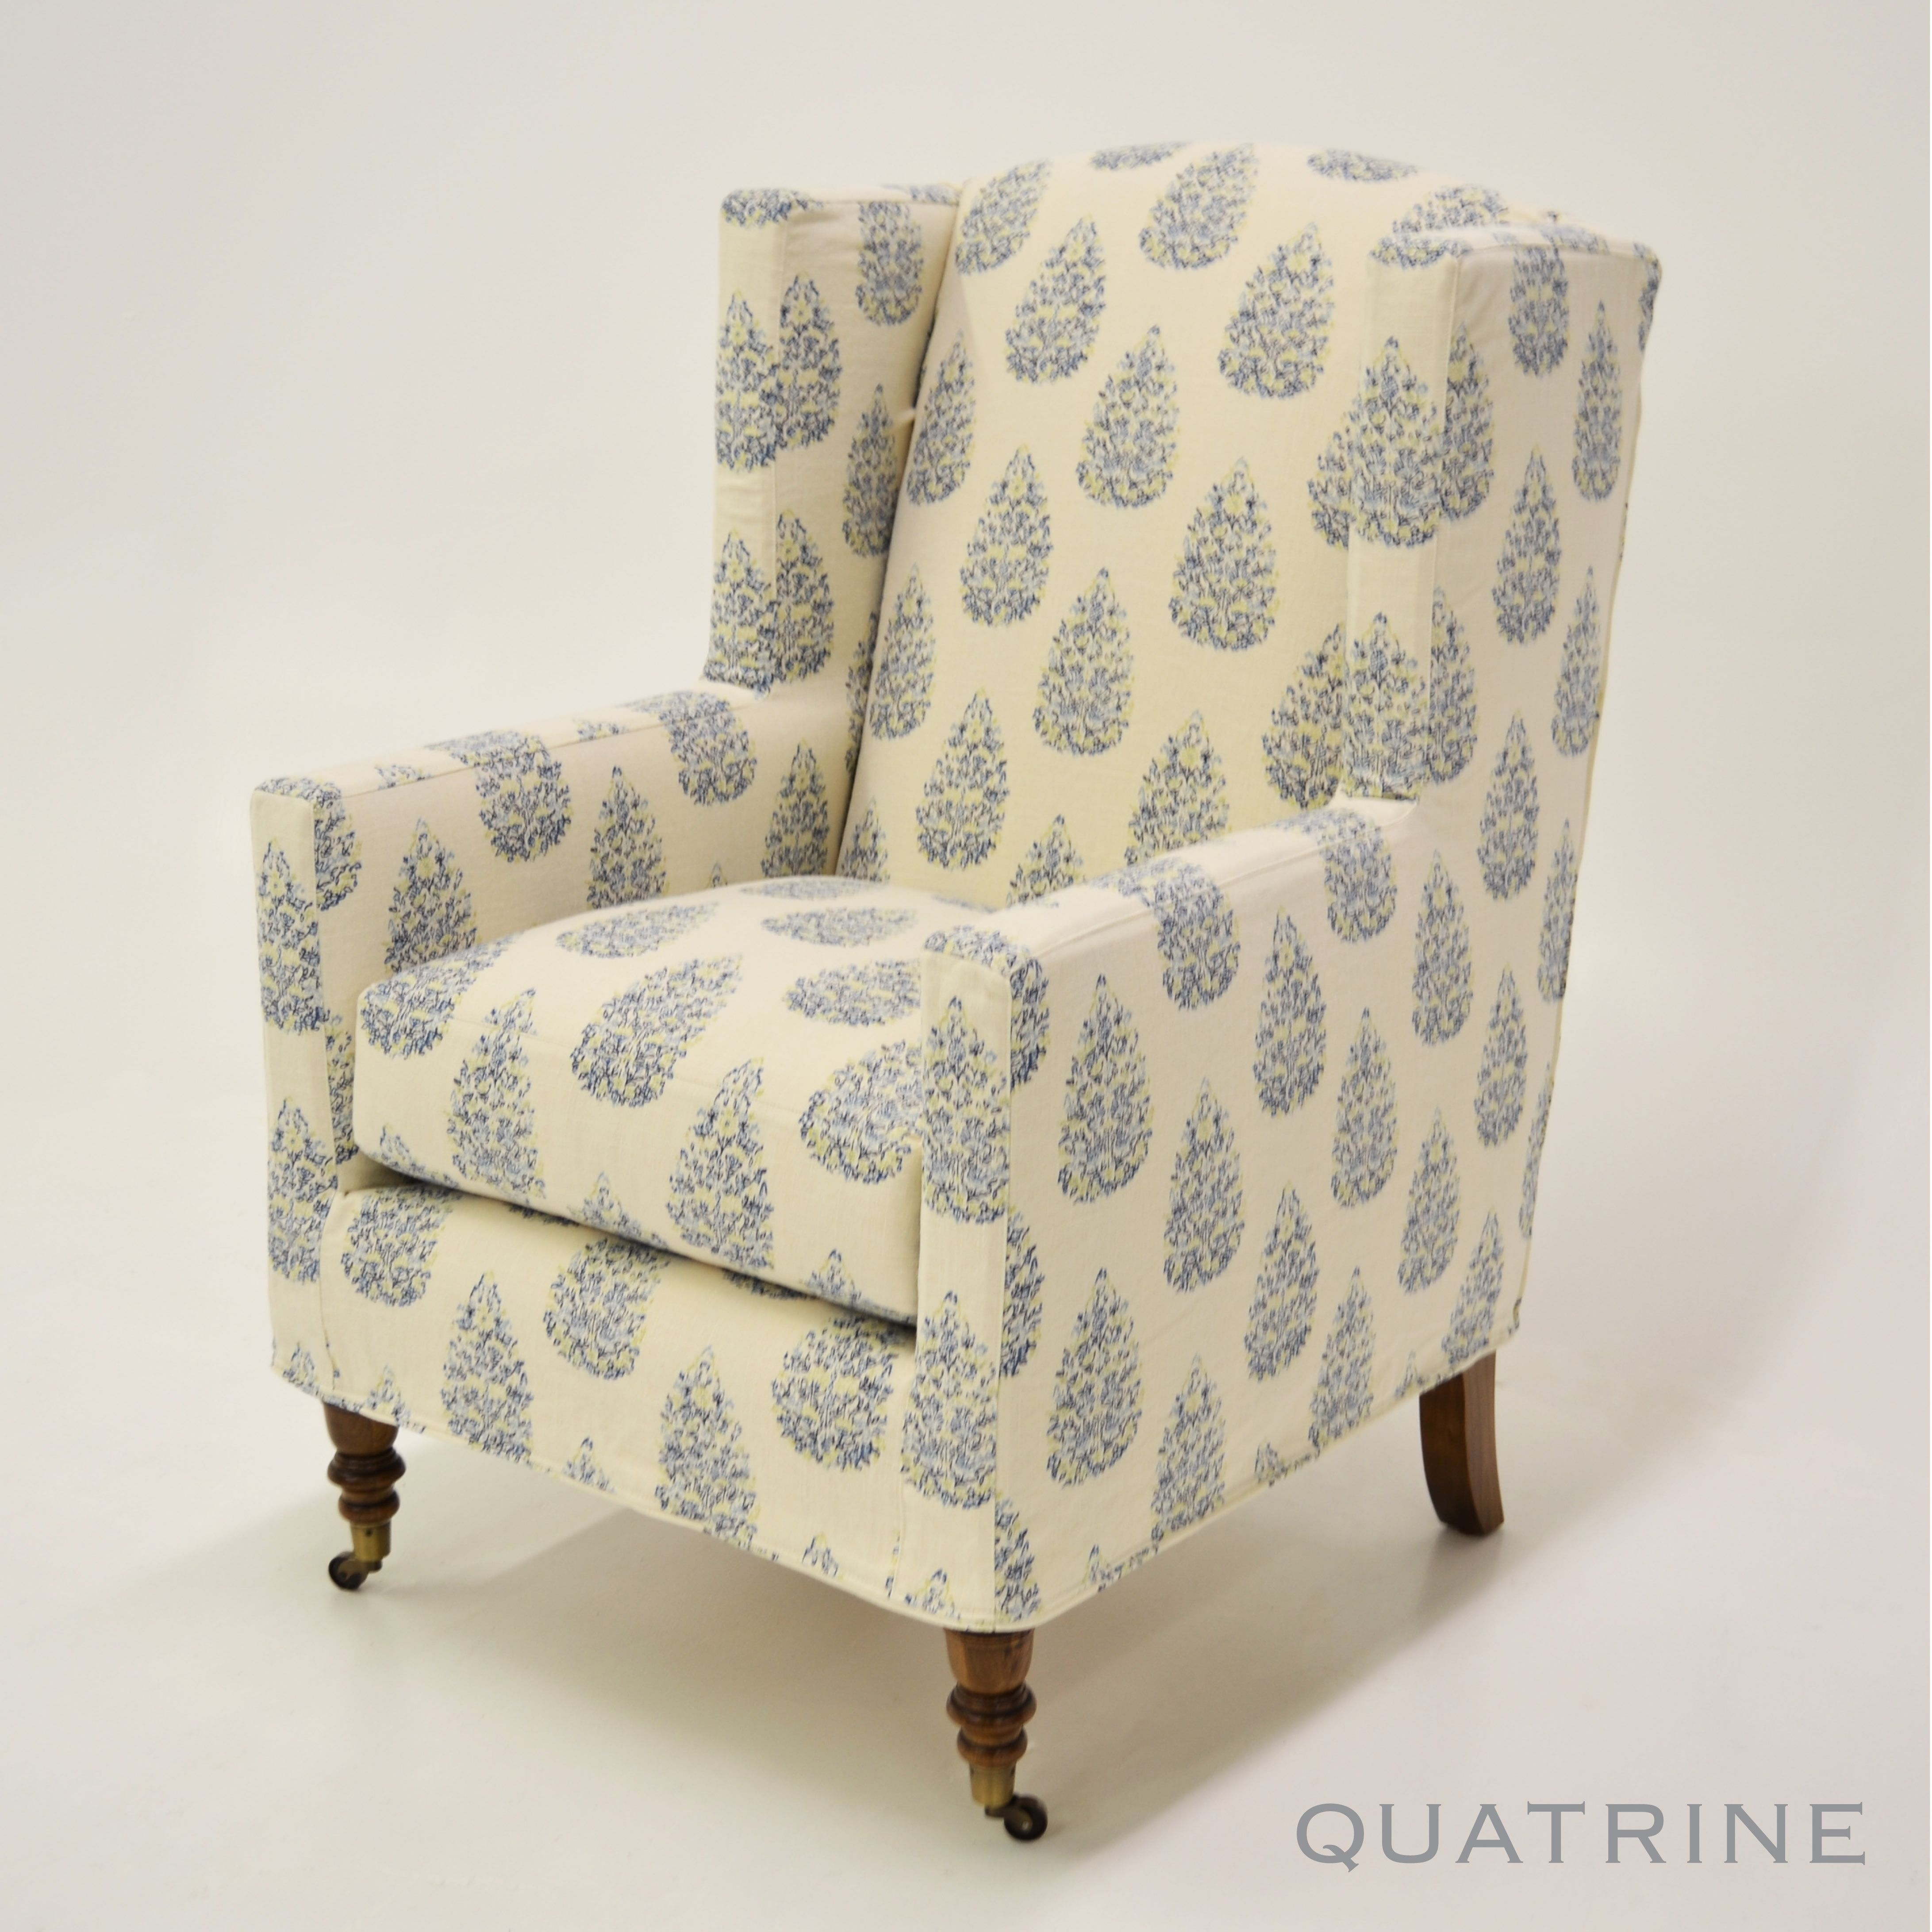 Modern Wingback Tailored Slipcover In Our Teardrop/Multi